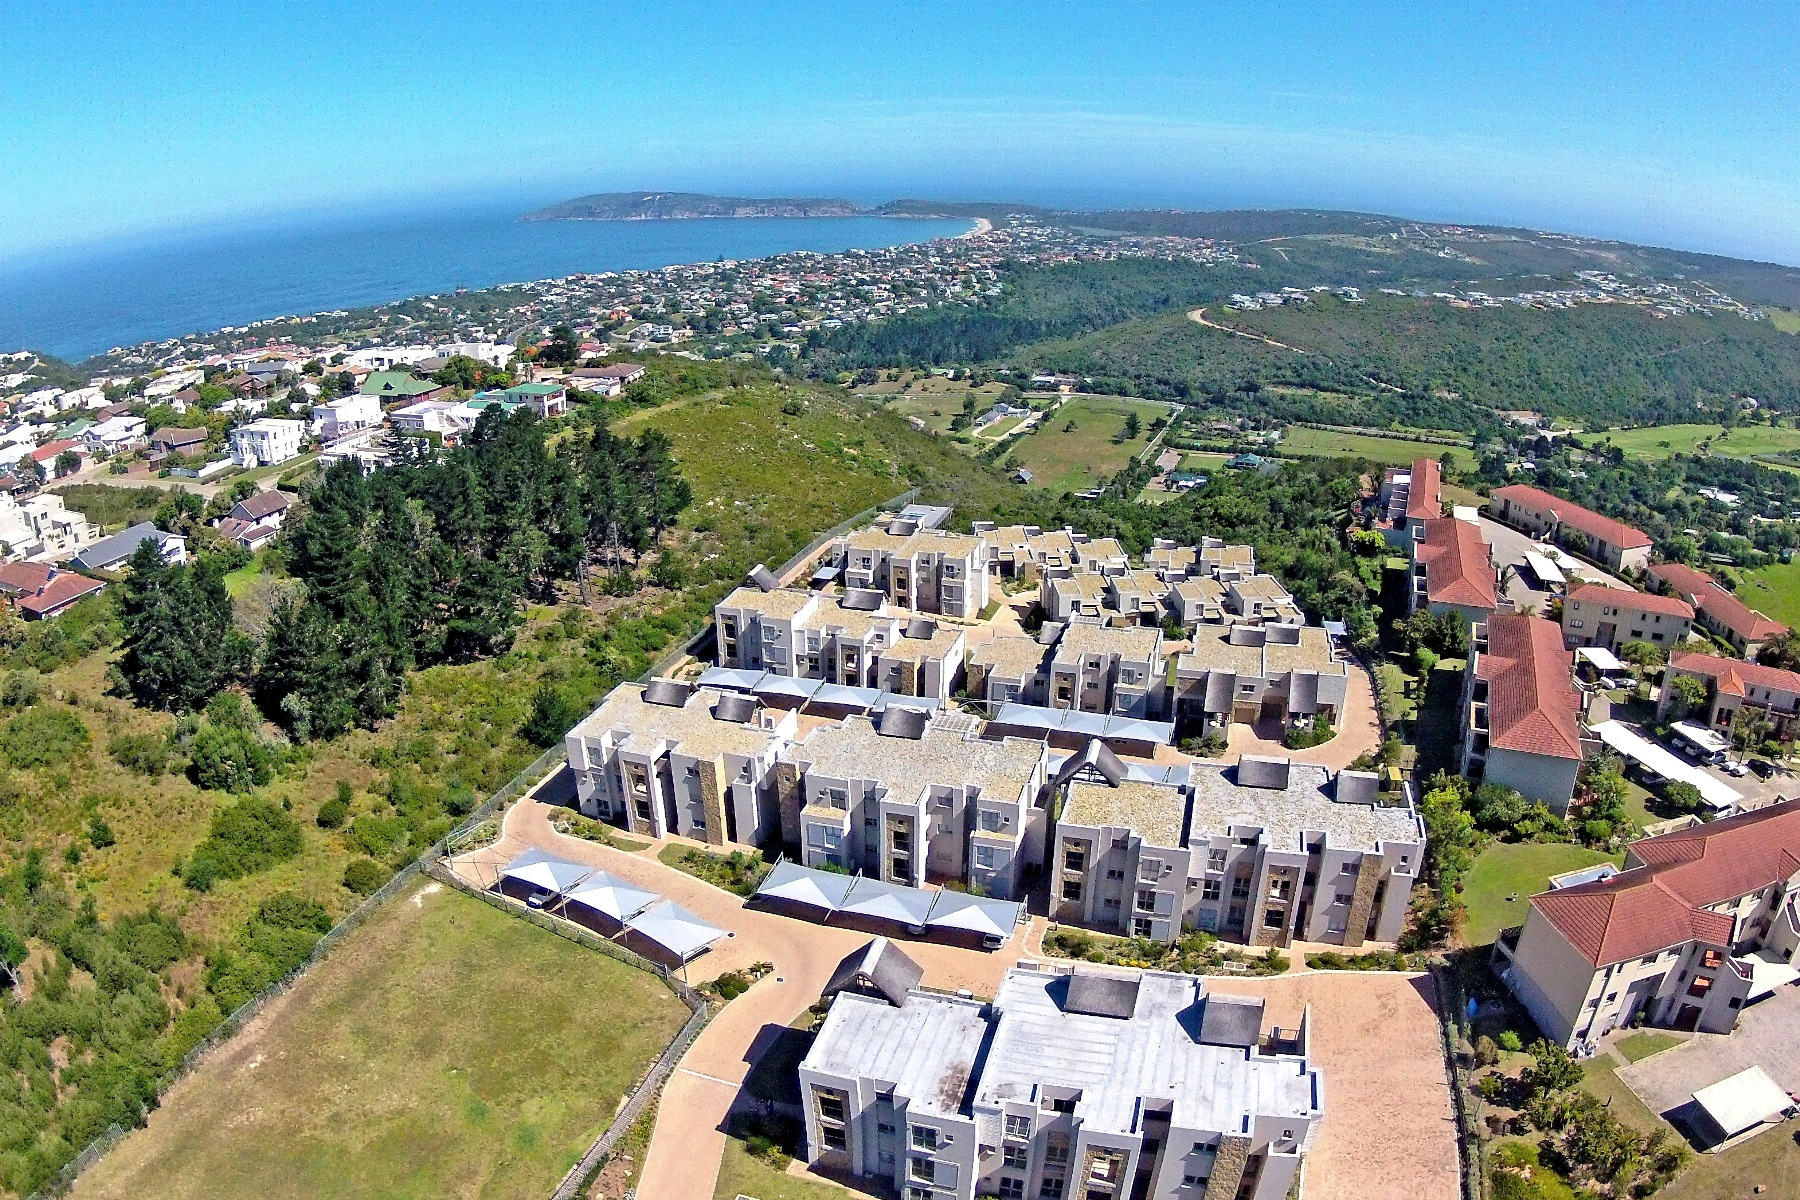 Townhouse for Sale at Sea view apartment Plettenberg Bay, Western Cape 6600 South Africa